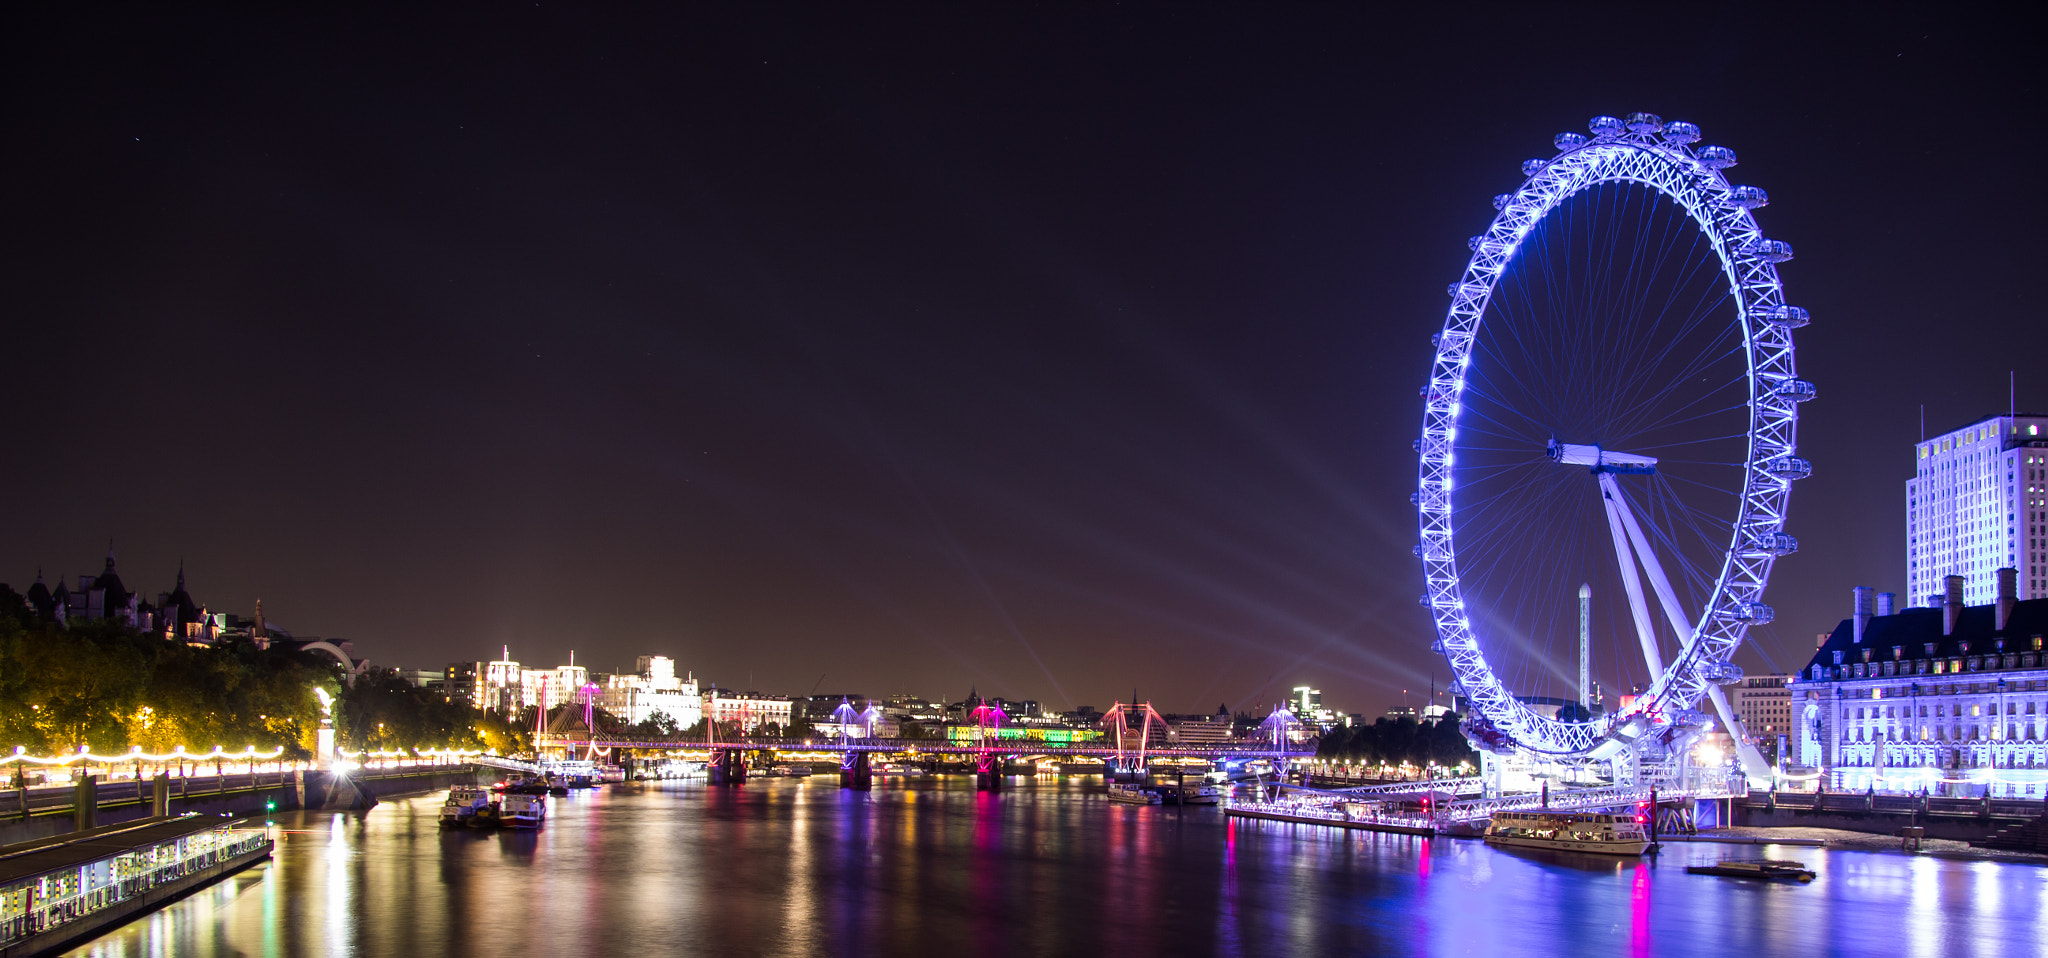 Photograph London Eye by Jeppy Mortellaro on 500px